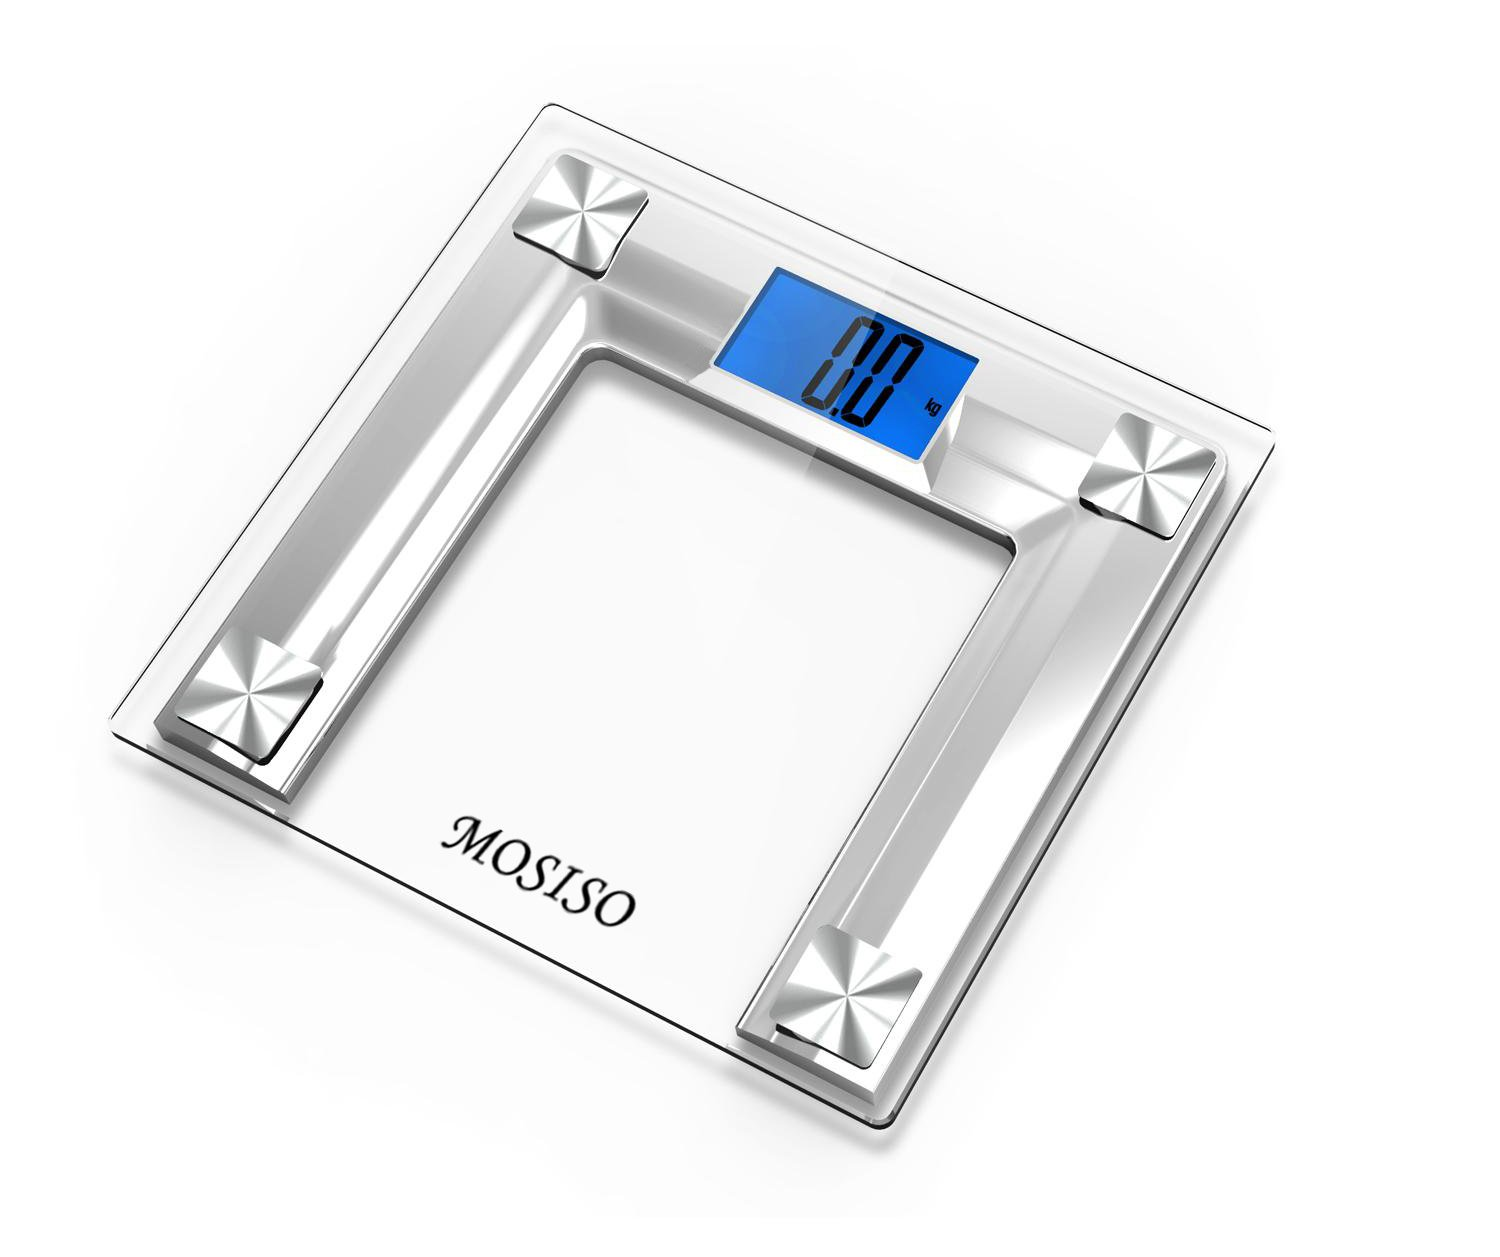 Bathroom scale accuracy consistency - Amazon Com Mosiso High Accuracy Digital Bathroom Scale With 4 3 Blue Backlight Display And Smart Step On Technology Newest Version Silver Health